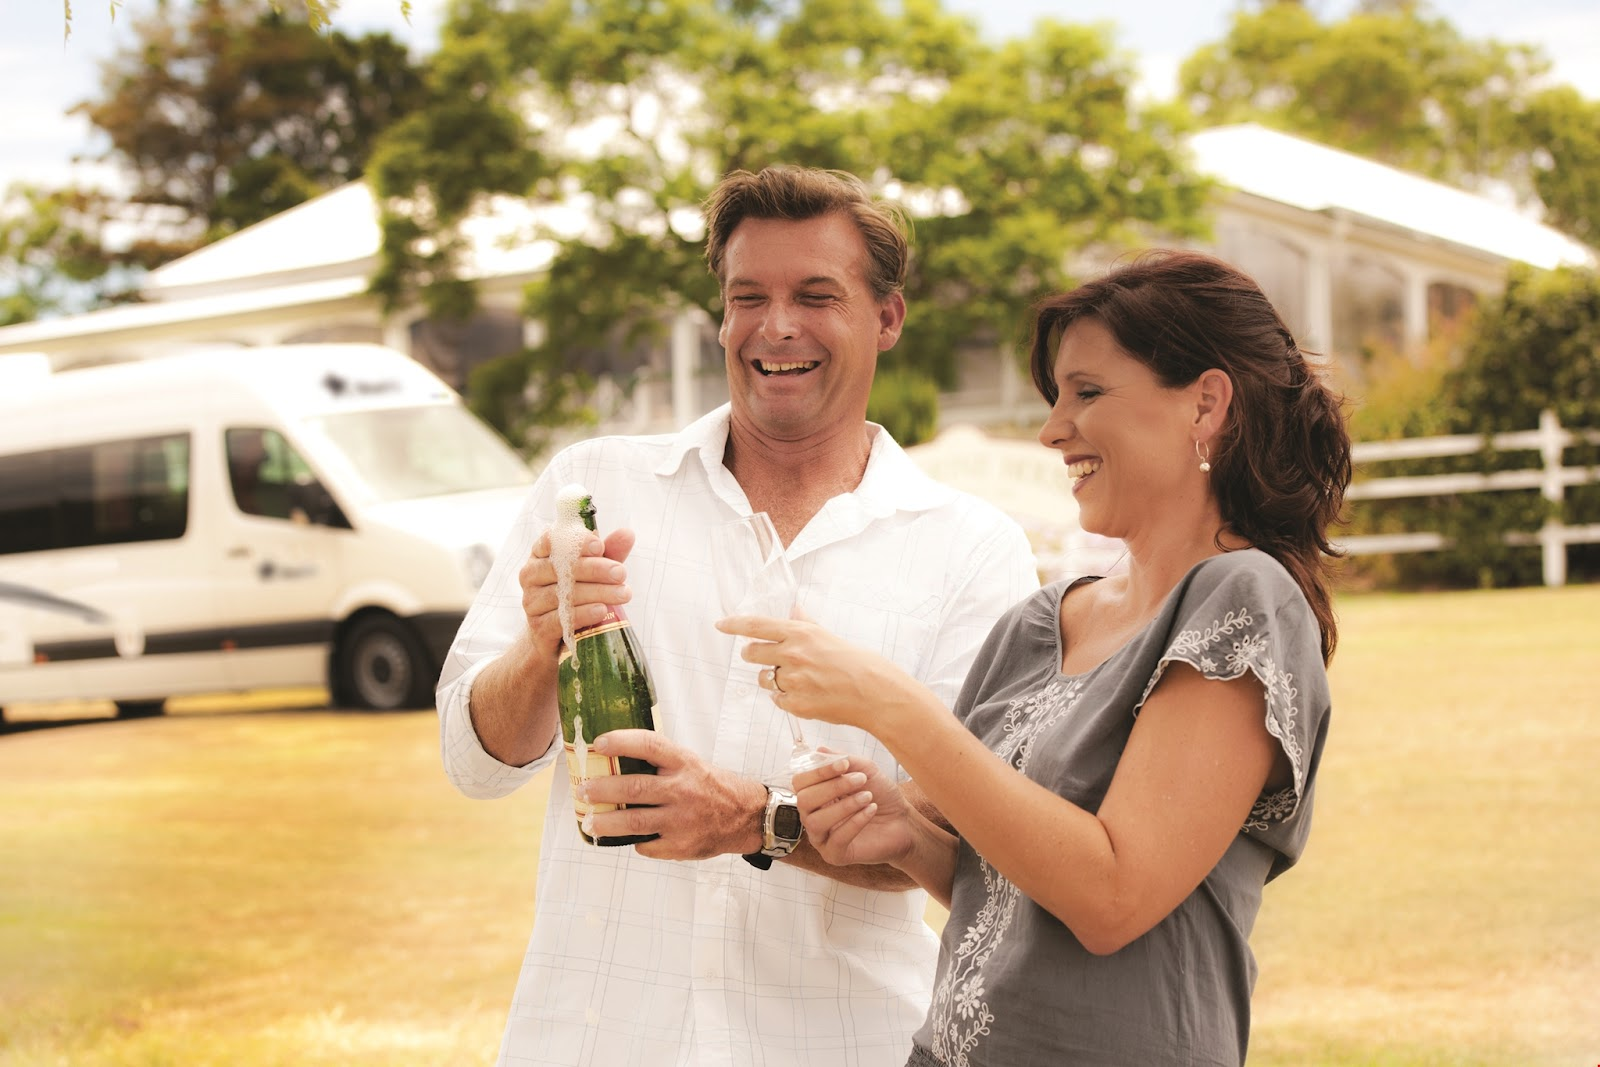 coupole popping champagne bought motorhome camper green tree apollo winnebago